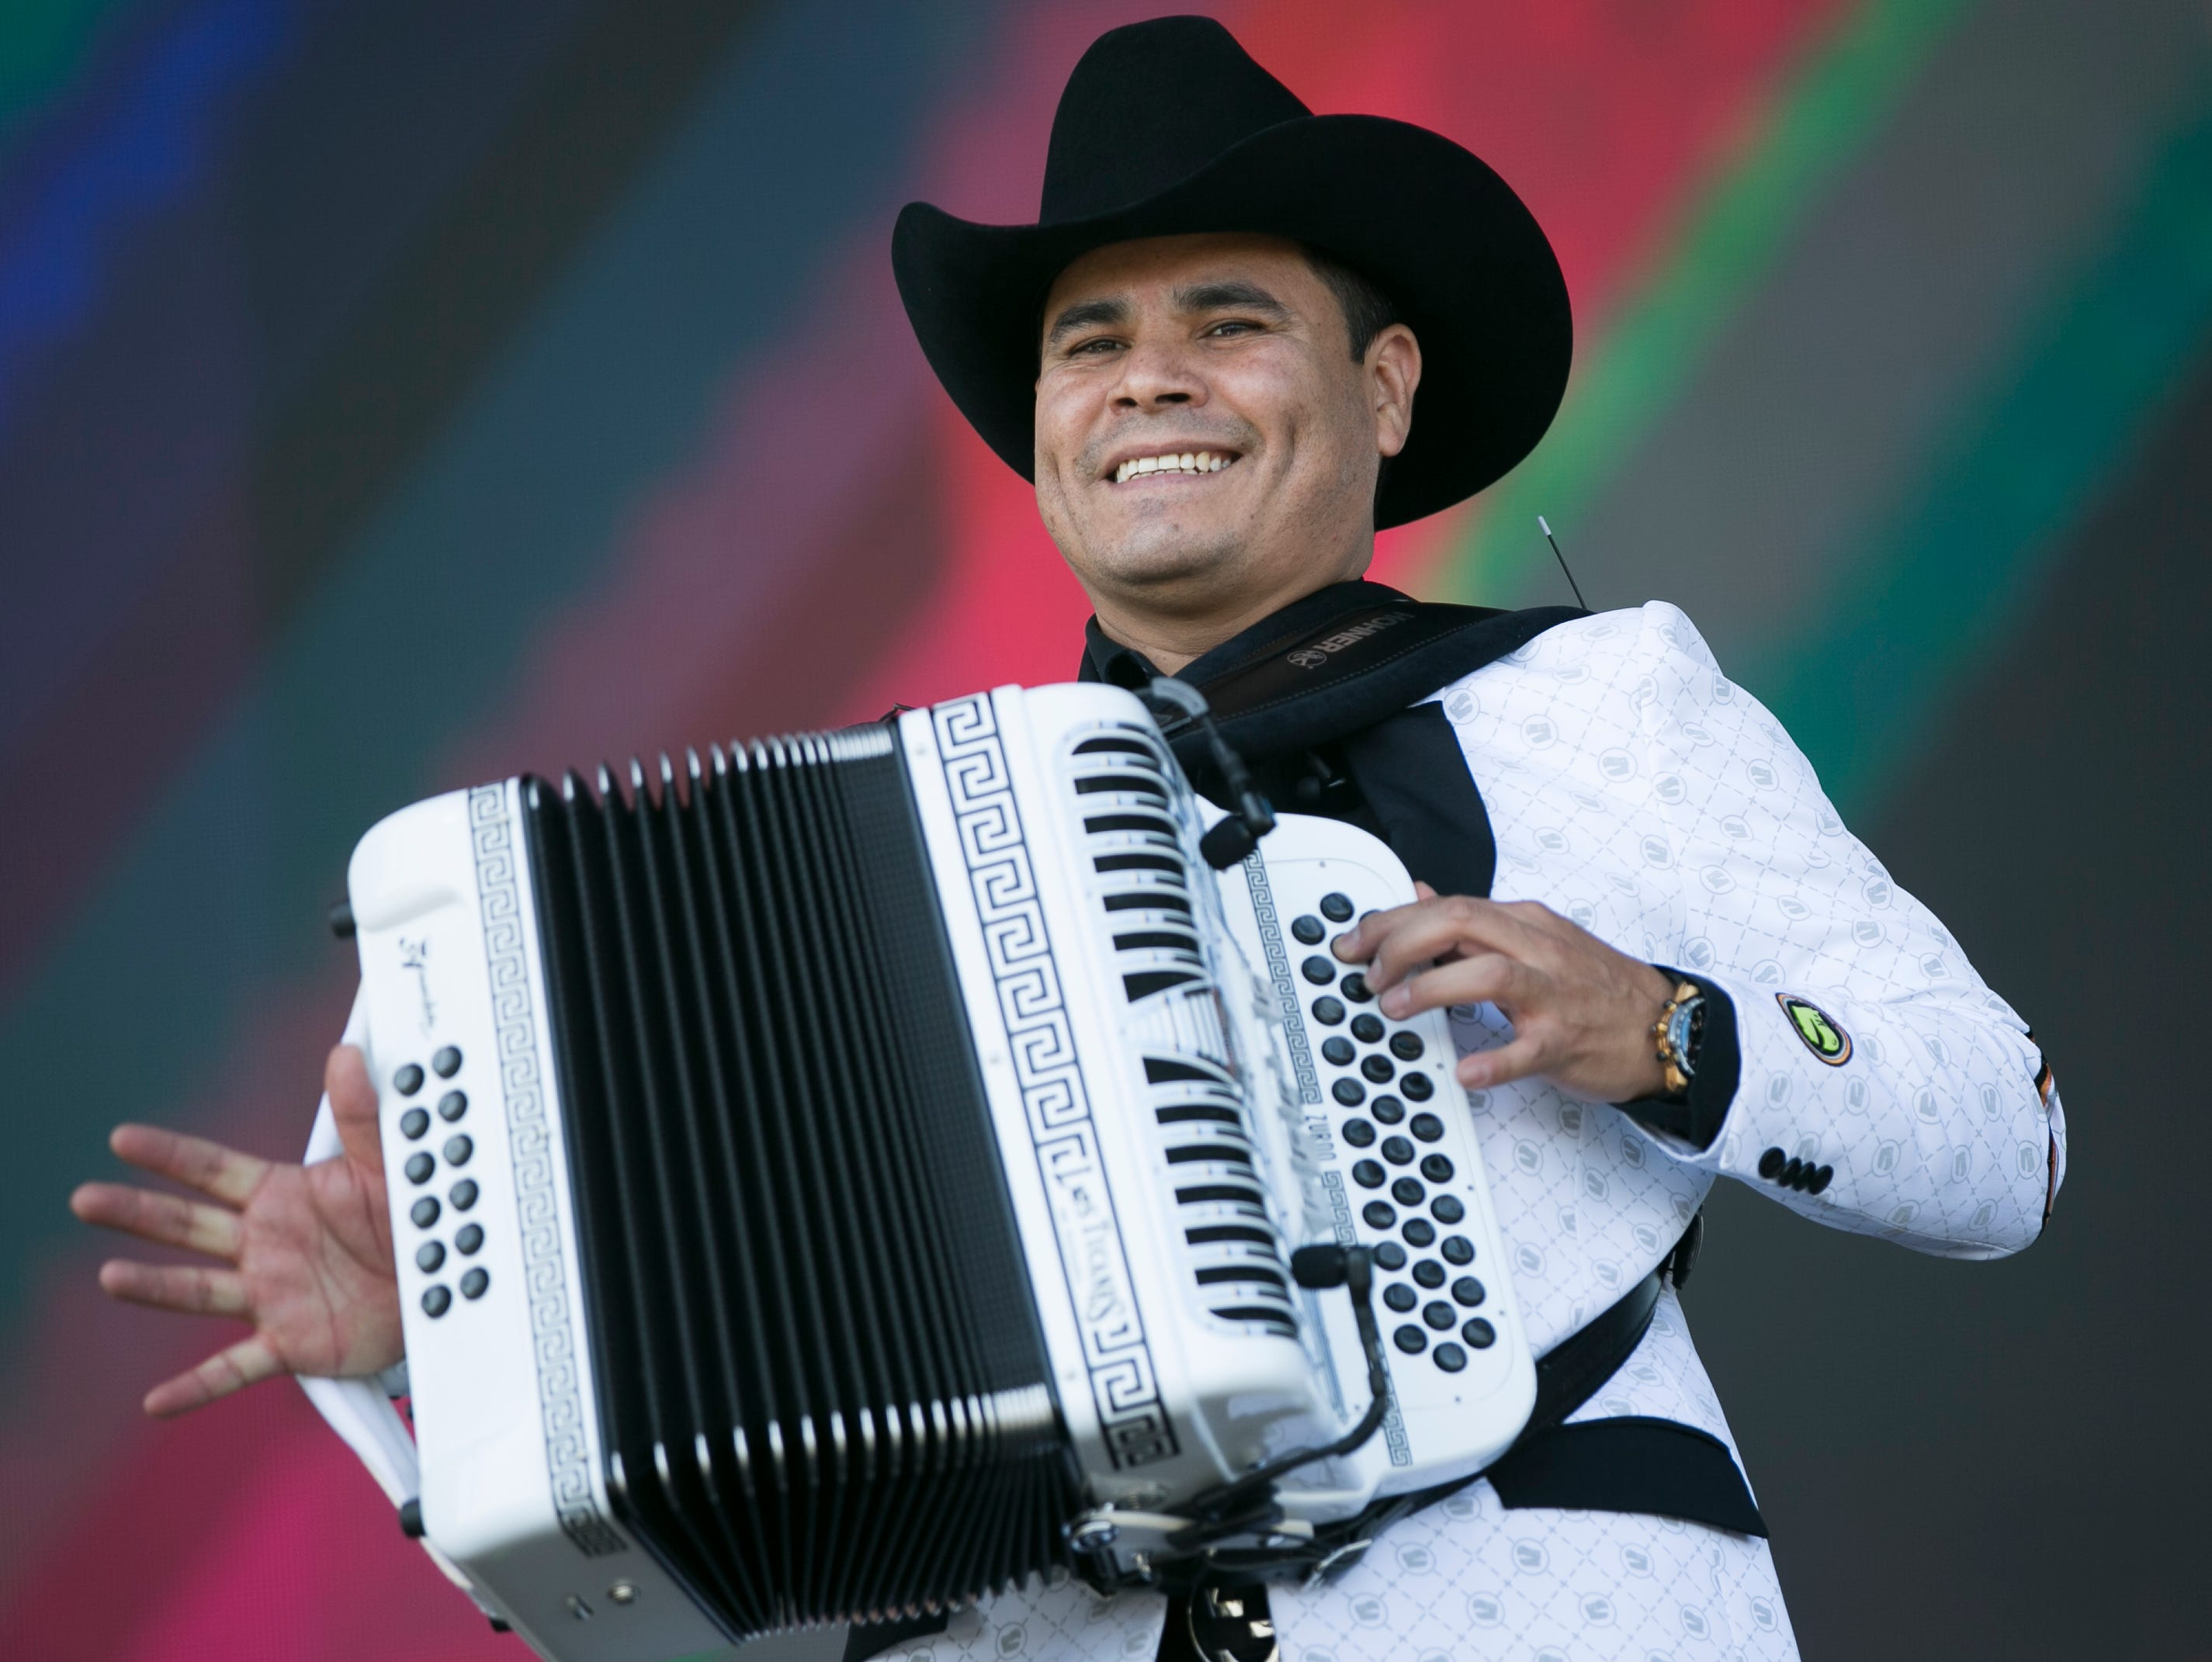 Los Tucanes de Tijuana perform on the main stage at the Coachella Valley Music and Arts Festival in Indio, Calif. on Fri. April 12, 2019.